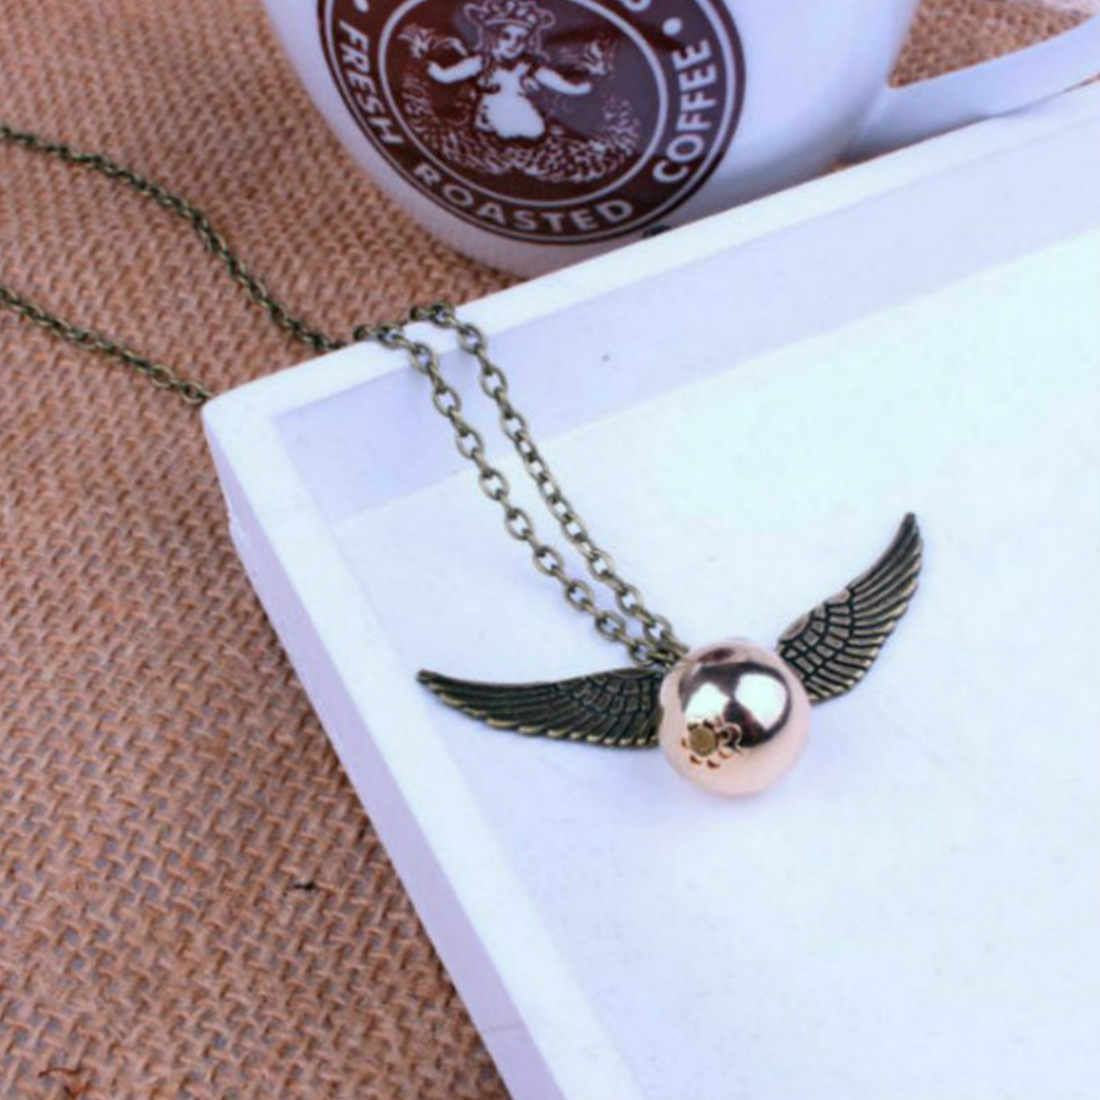 1 Pcs Sell Wings Kim Necklace Chokers Necklace Trends Vintage Stretch Henna Gothic Punk Elastic Women's Jewelry For Girls